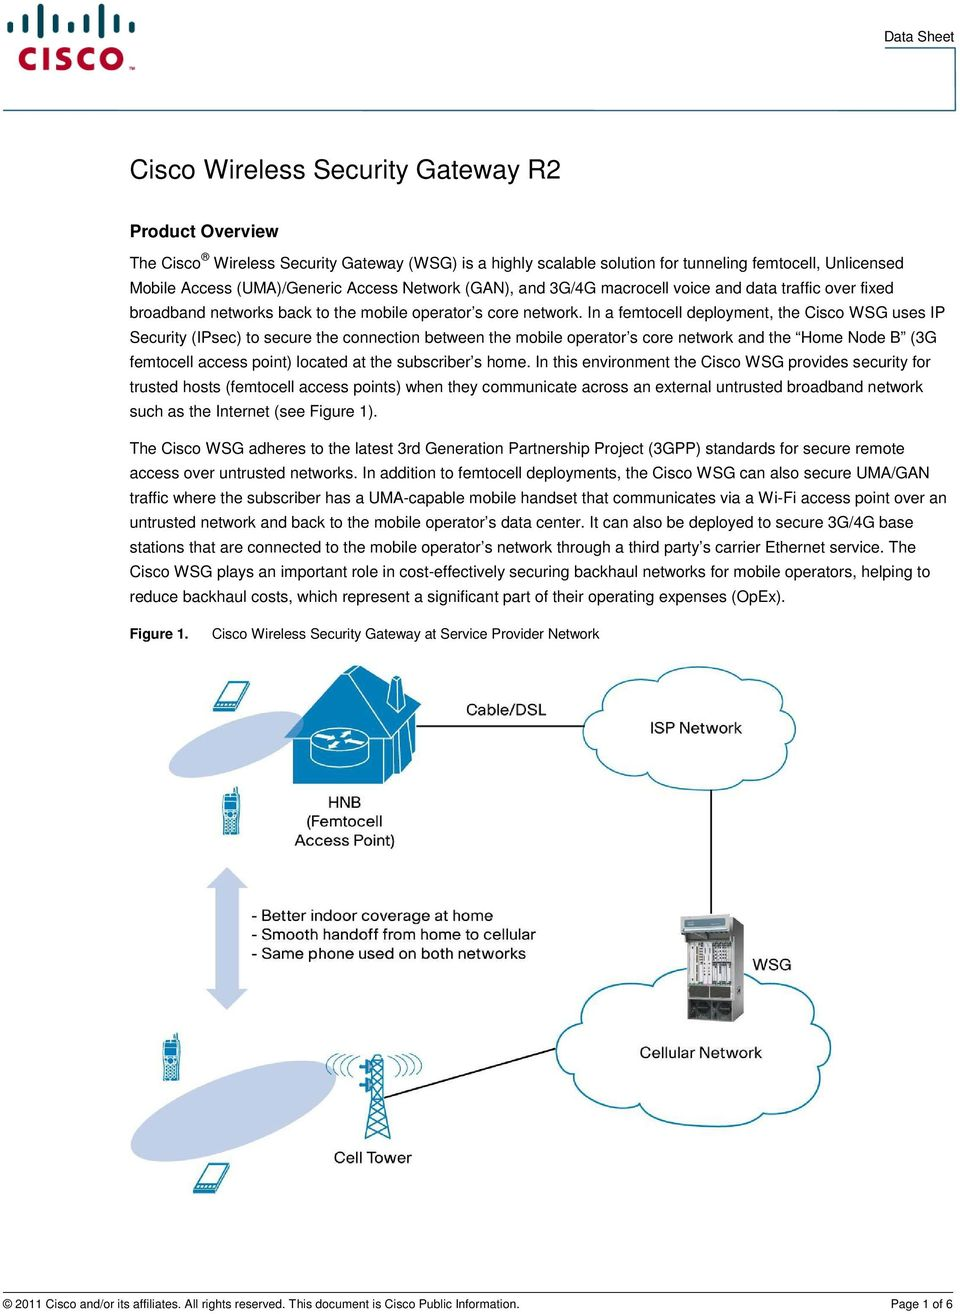 In a femtocell deployment, the Cisco WSG uses IP Security (IPsec) to secure the connection between the mobile operator s core network and the Home Node B (3G femtocell access point) located at the